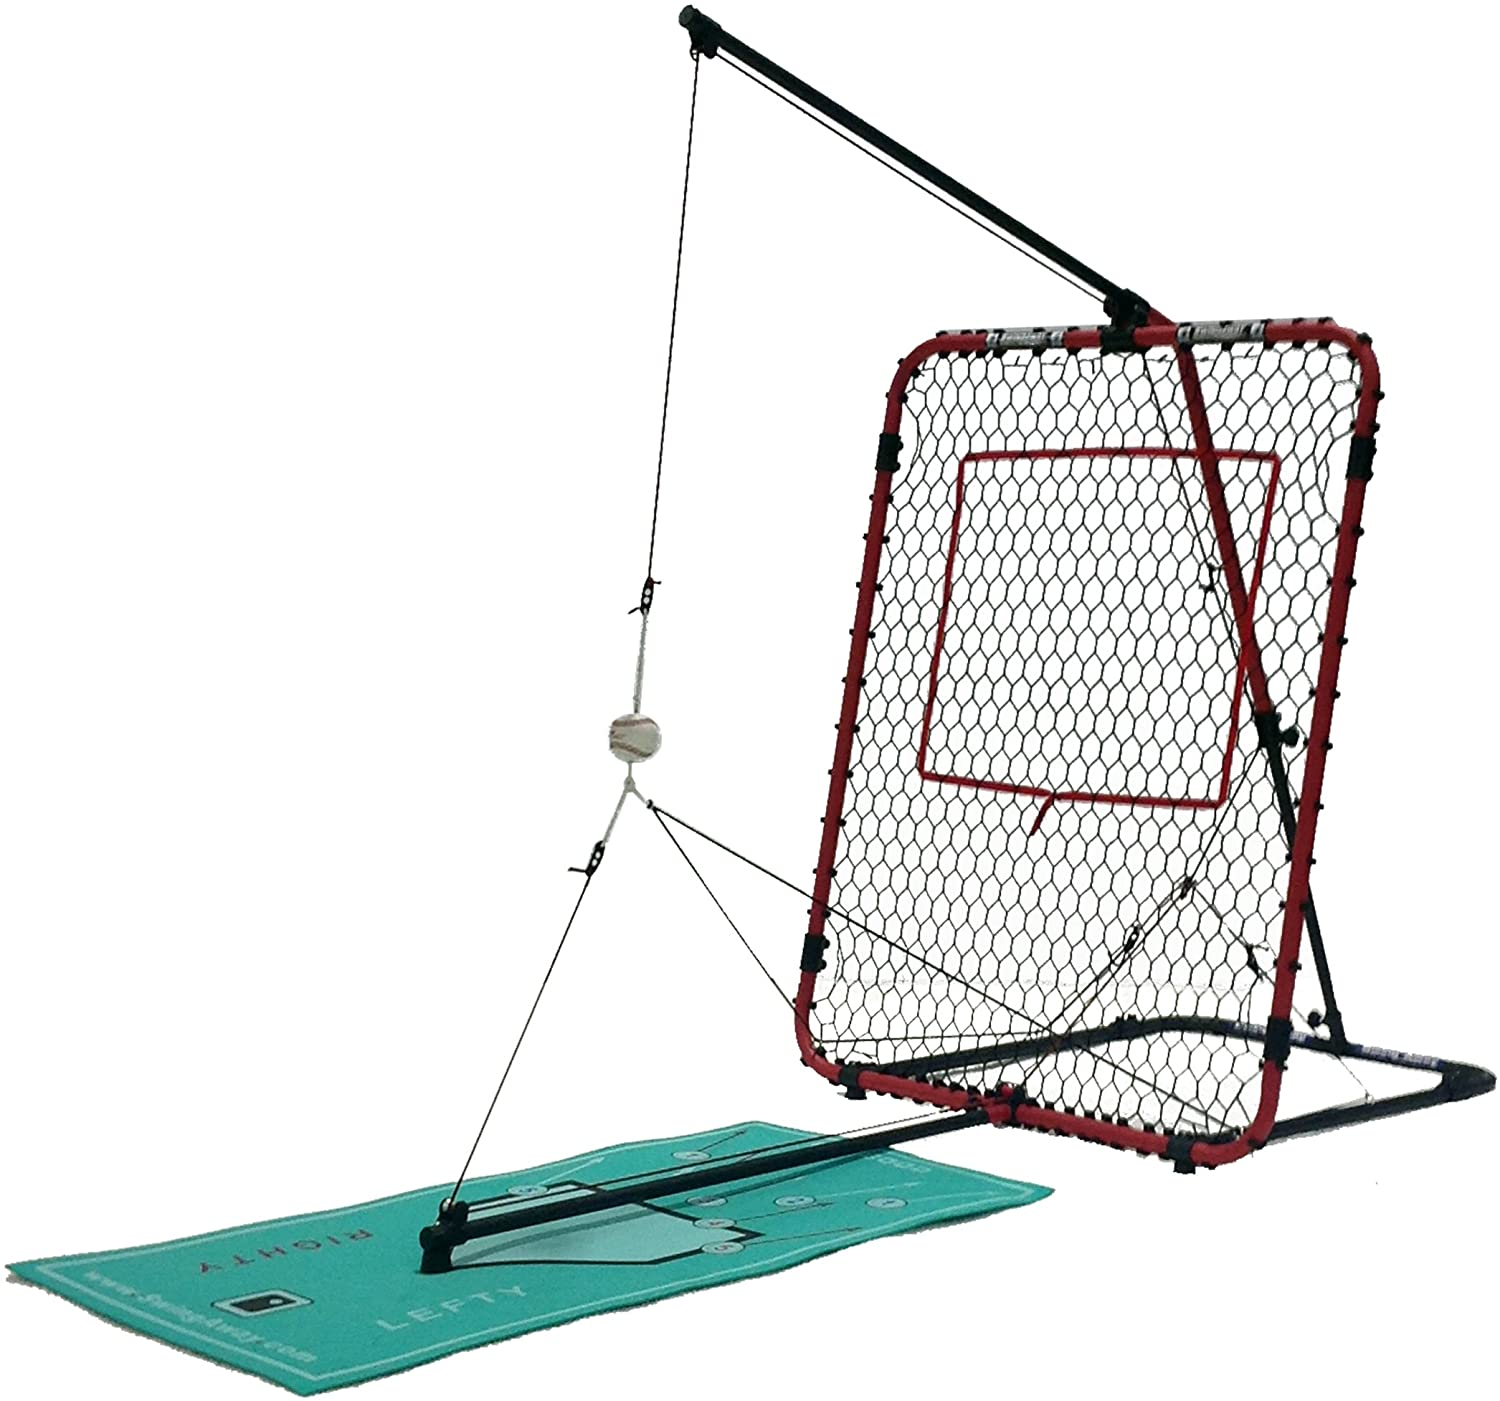 SwingAway Hitting Trainer | Swing Trainers for Baseball